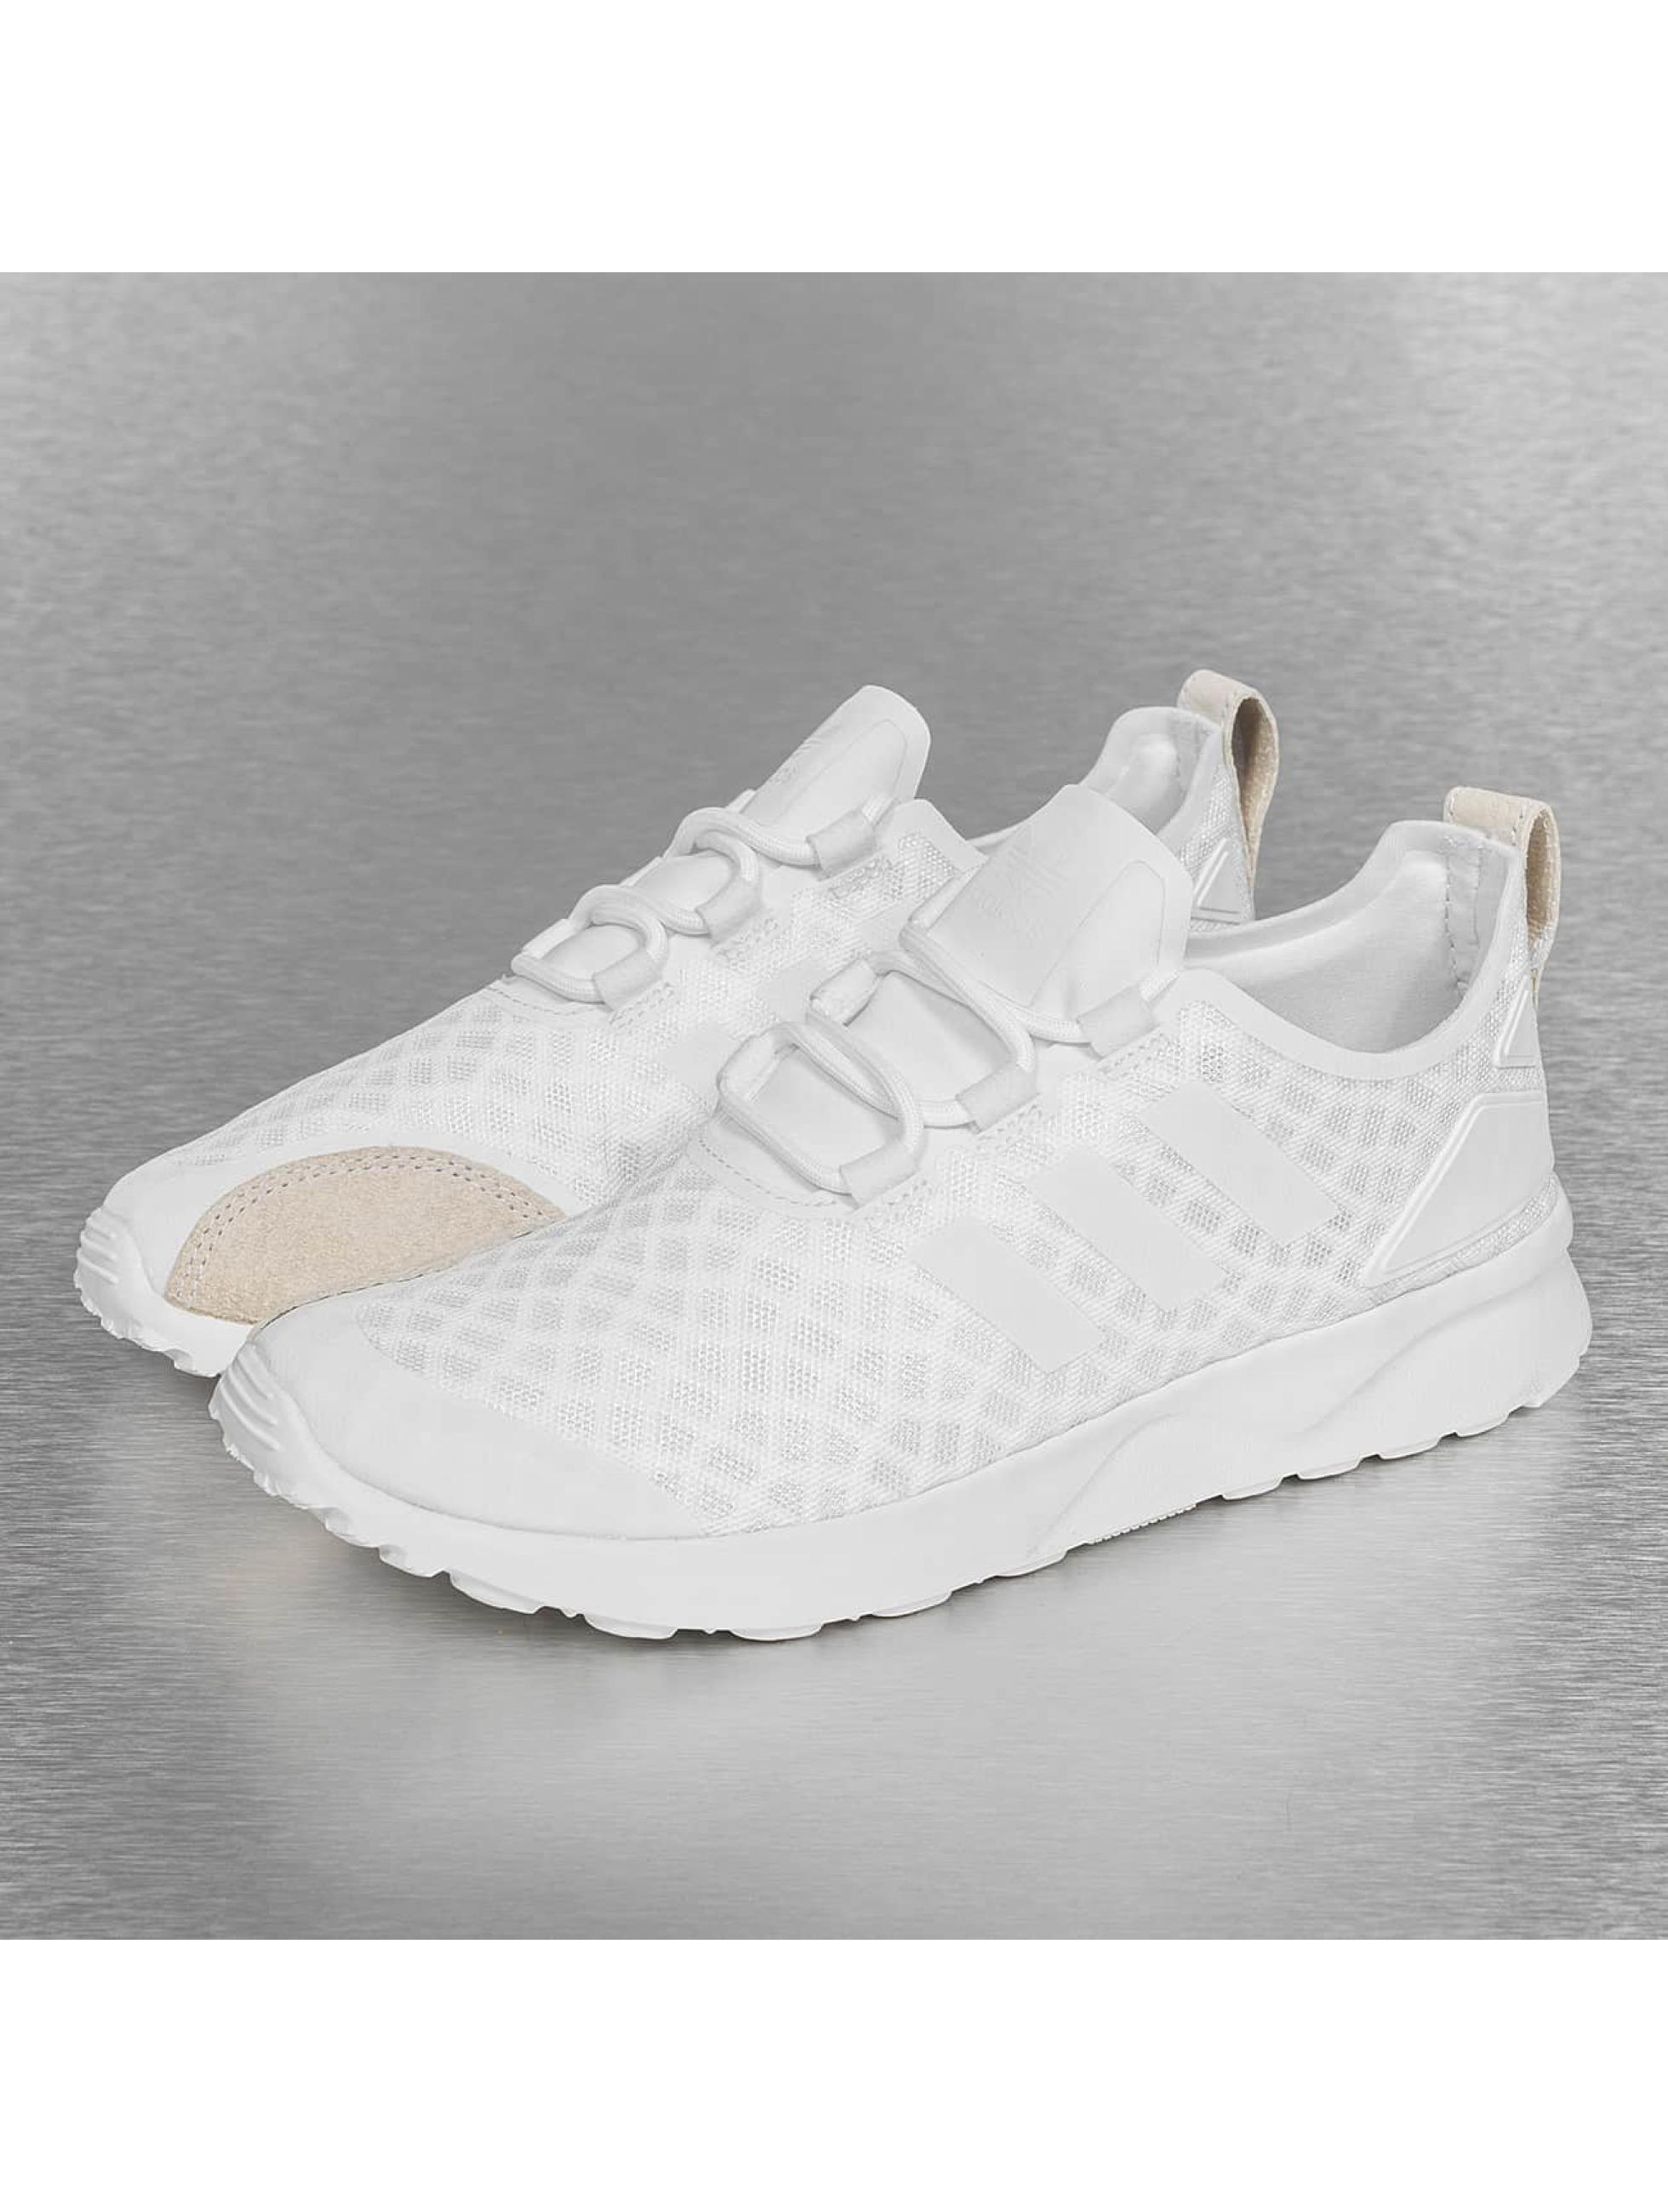 Zx Flux Adv Homme